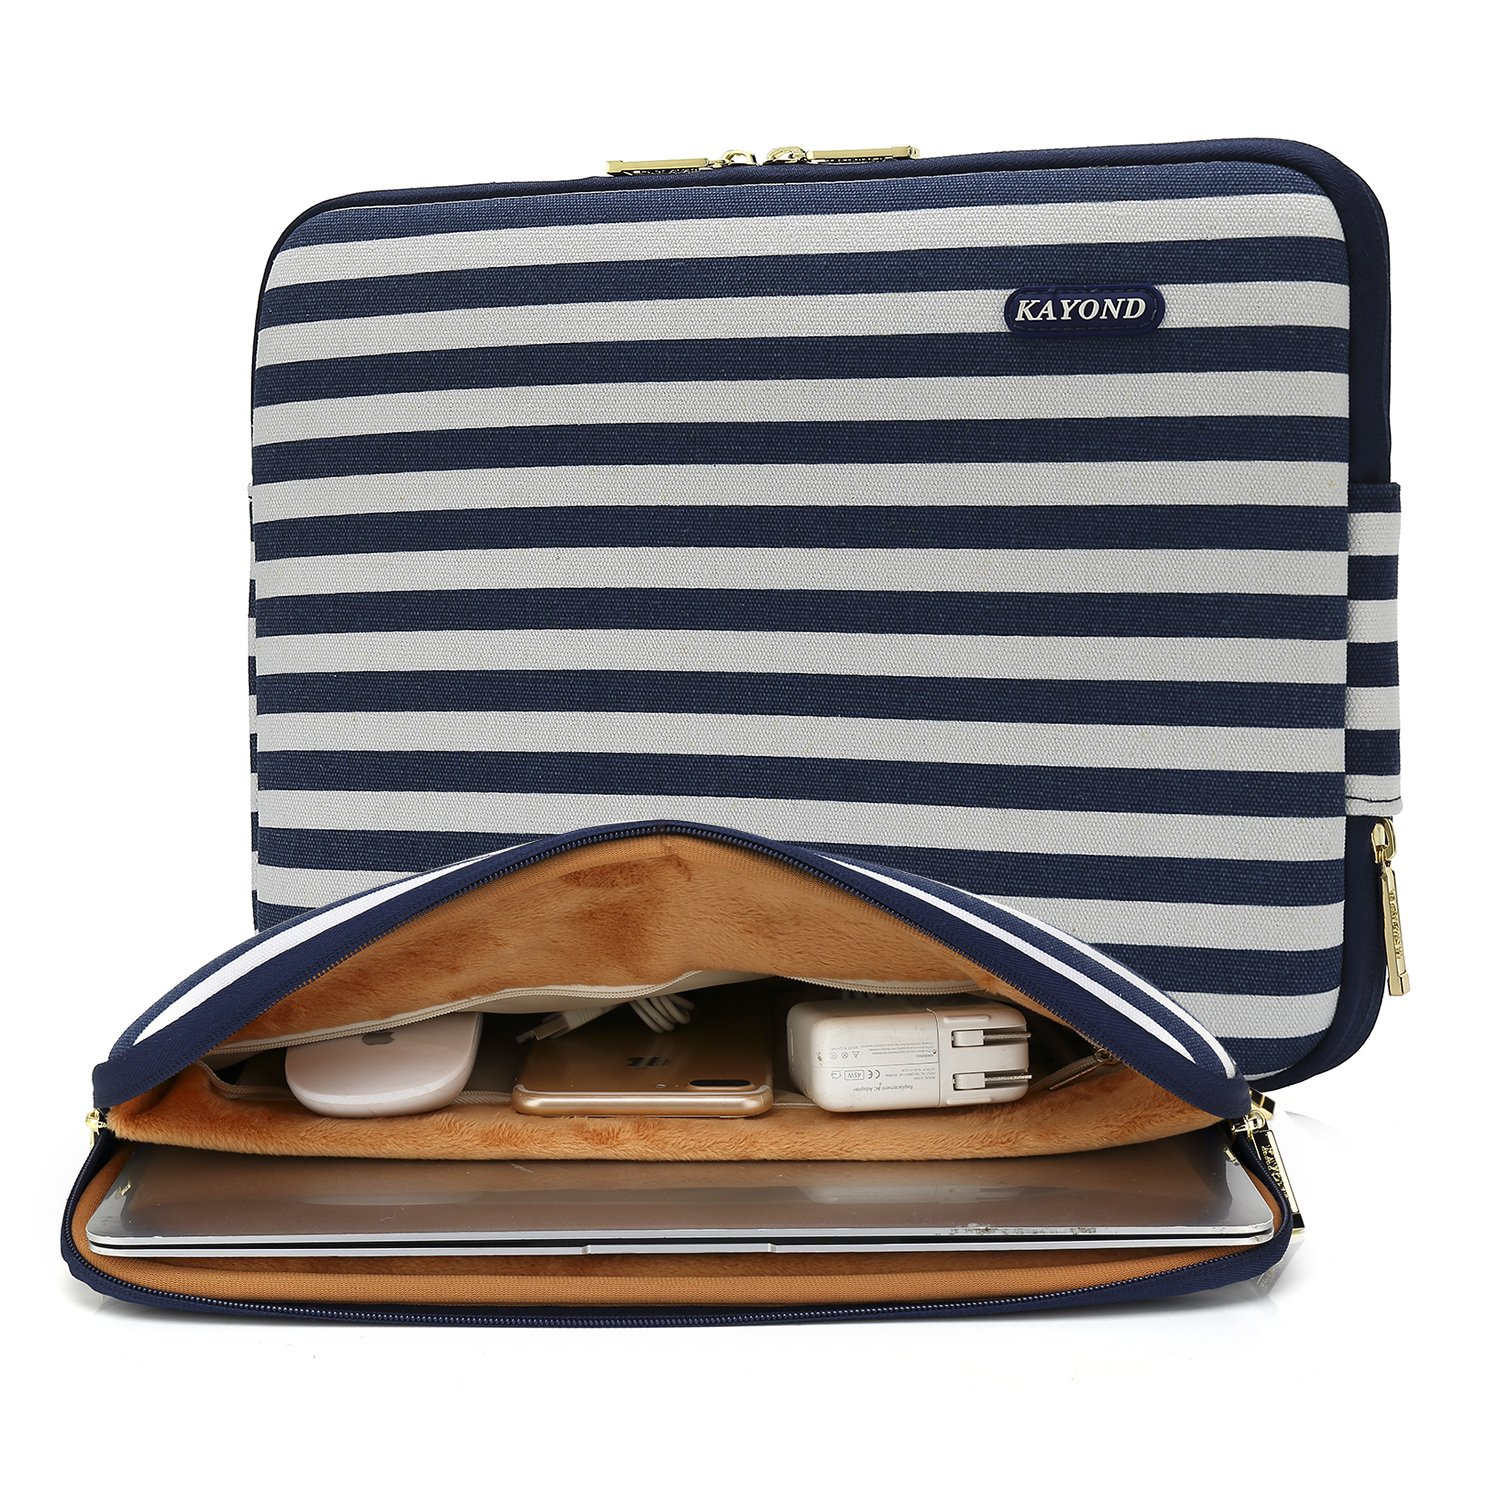 Kayond Canvas Water-Resistant 13 inch Laptop Sleeve -13 inch 13.3 inch Laptop case,12.9 inch Tablet Case Compatible MacBook(13-13.3 inches, Breton Stripe) by kayond